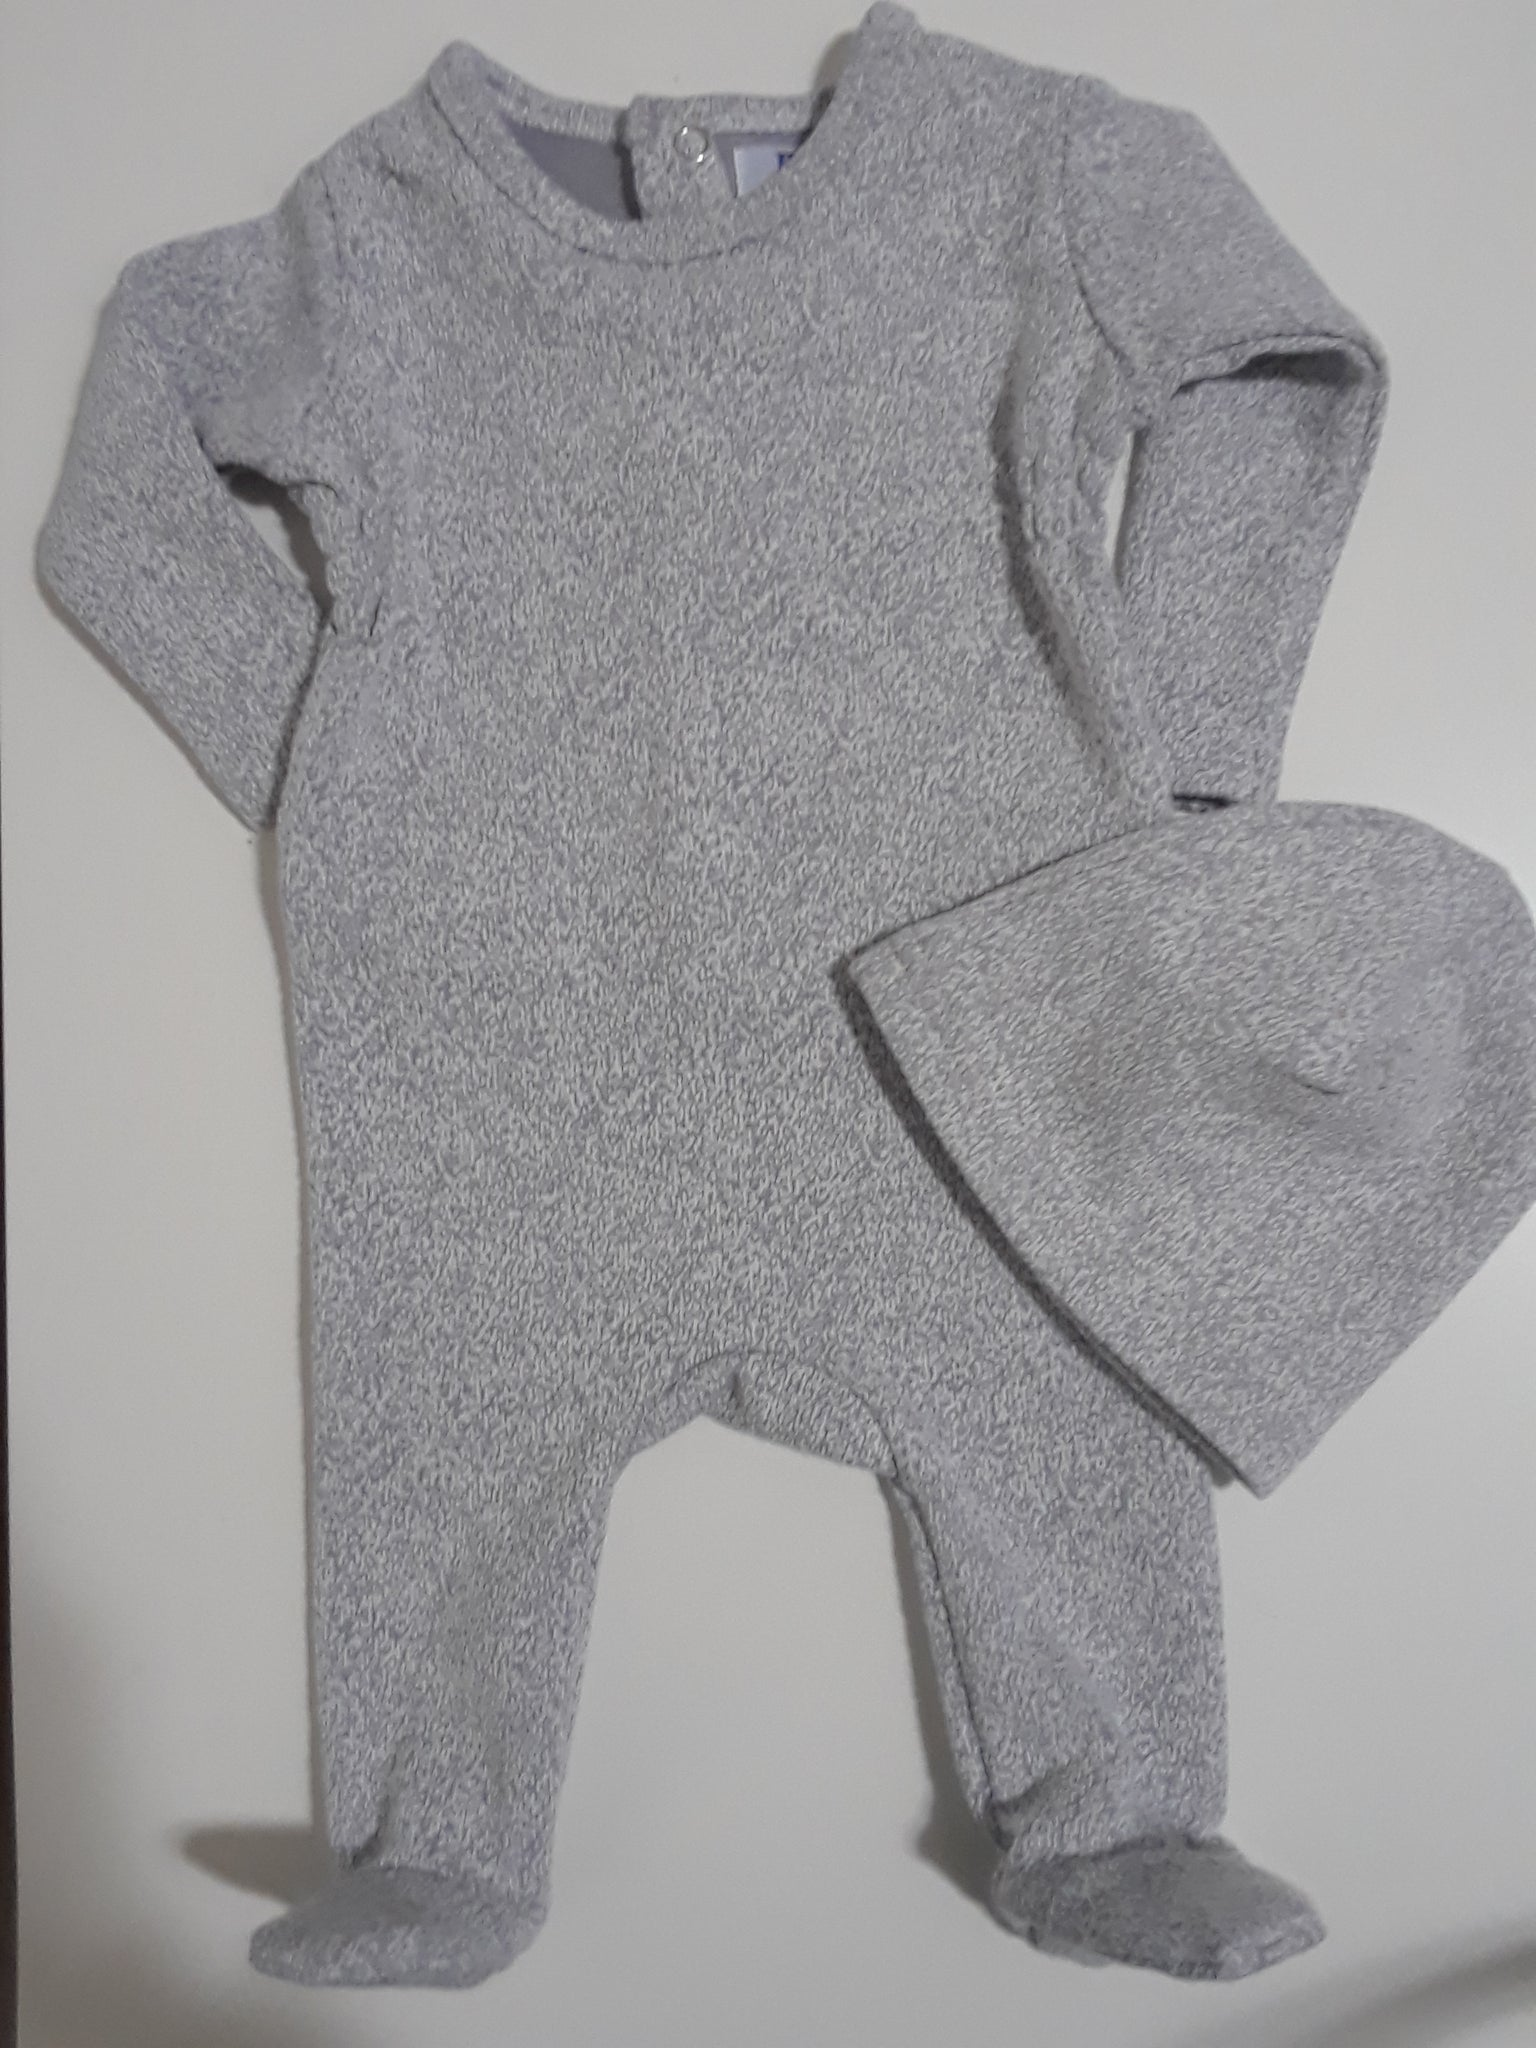 P&P Heather grey stretchy & beanie